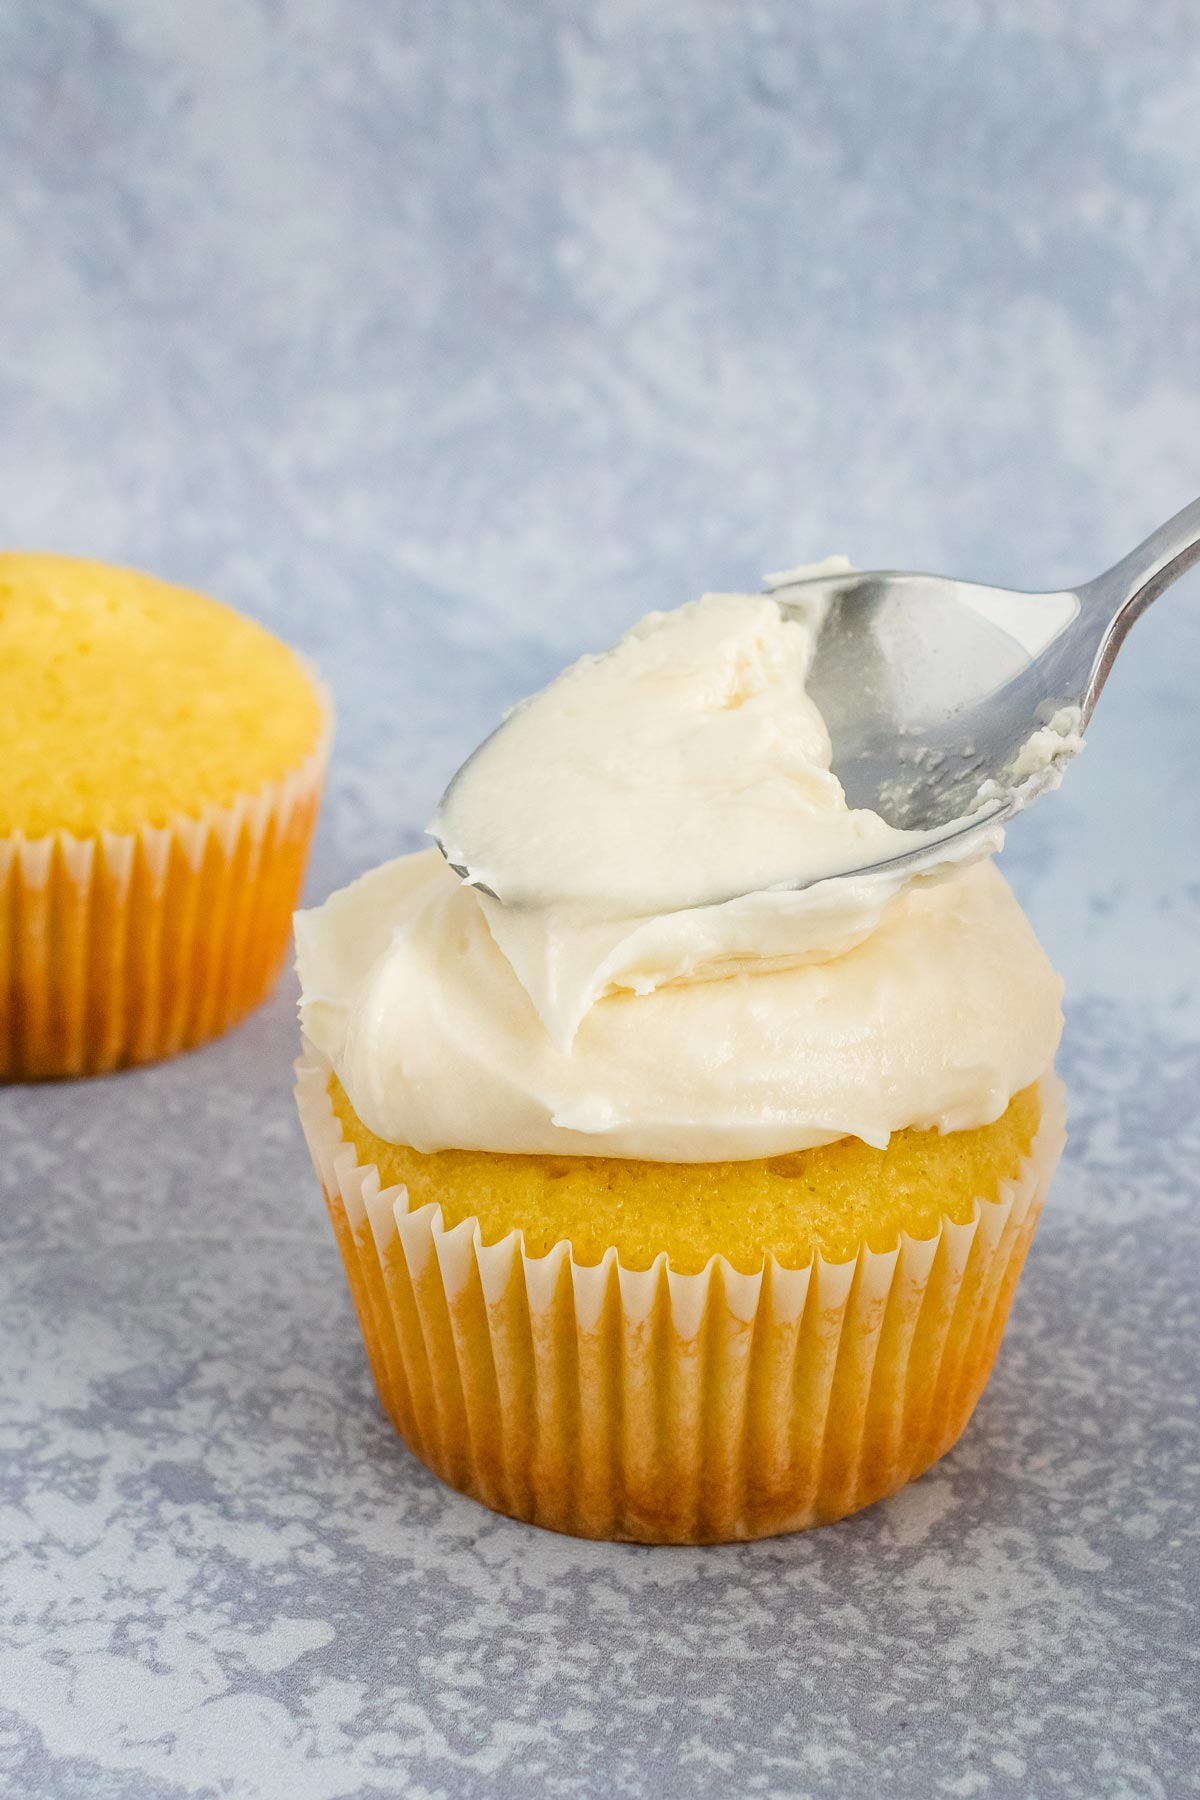 A vanilla cupcake being frosted with the back of a spoon.